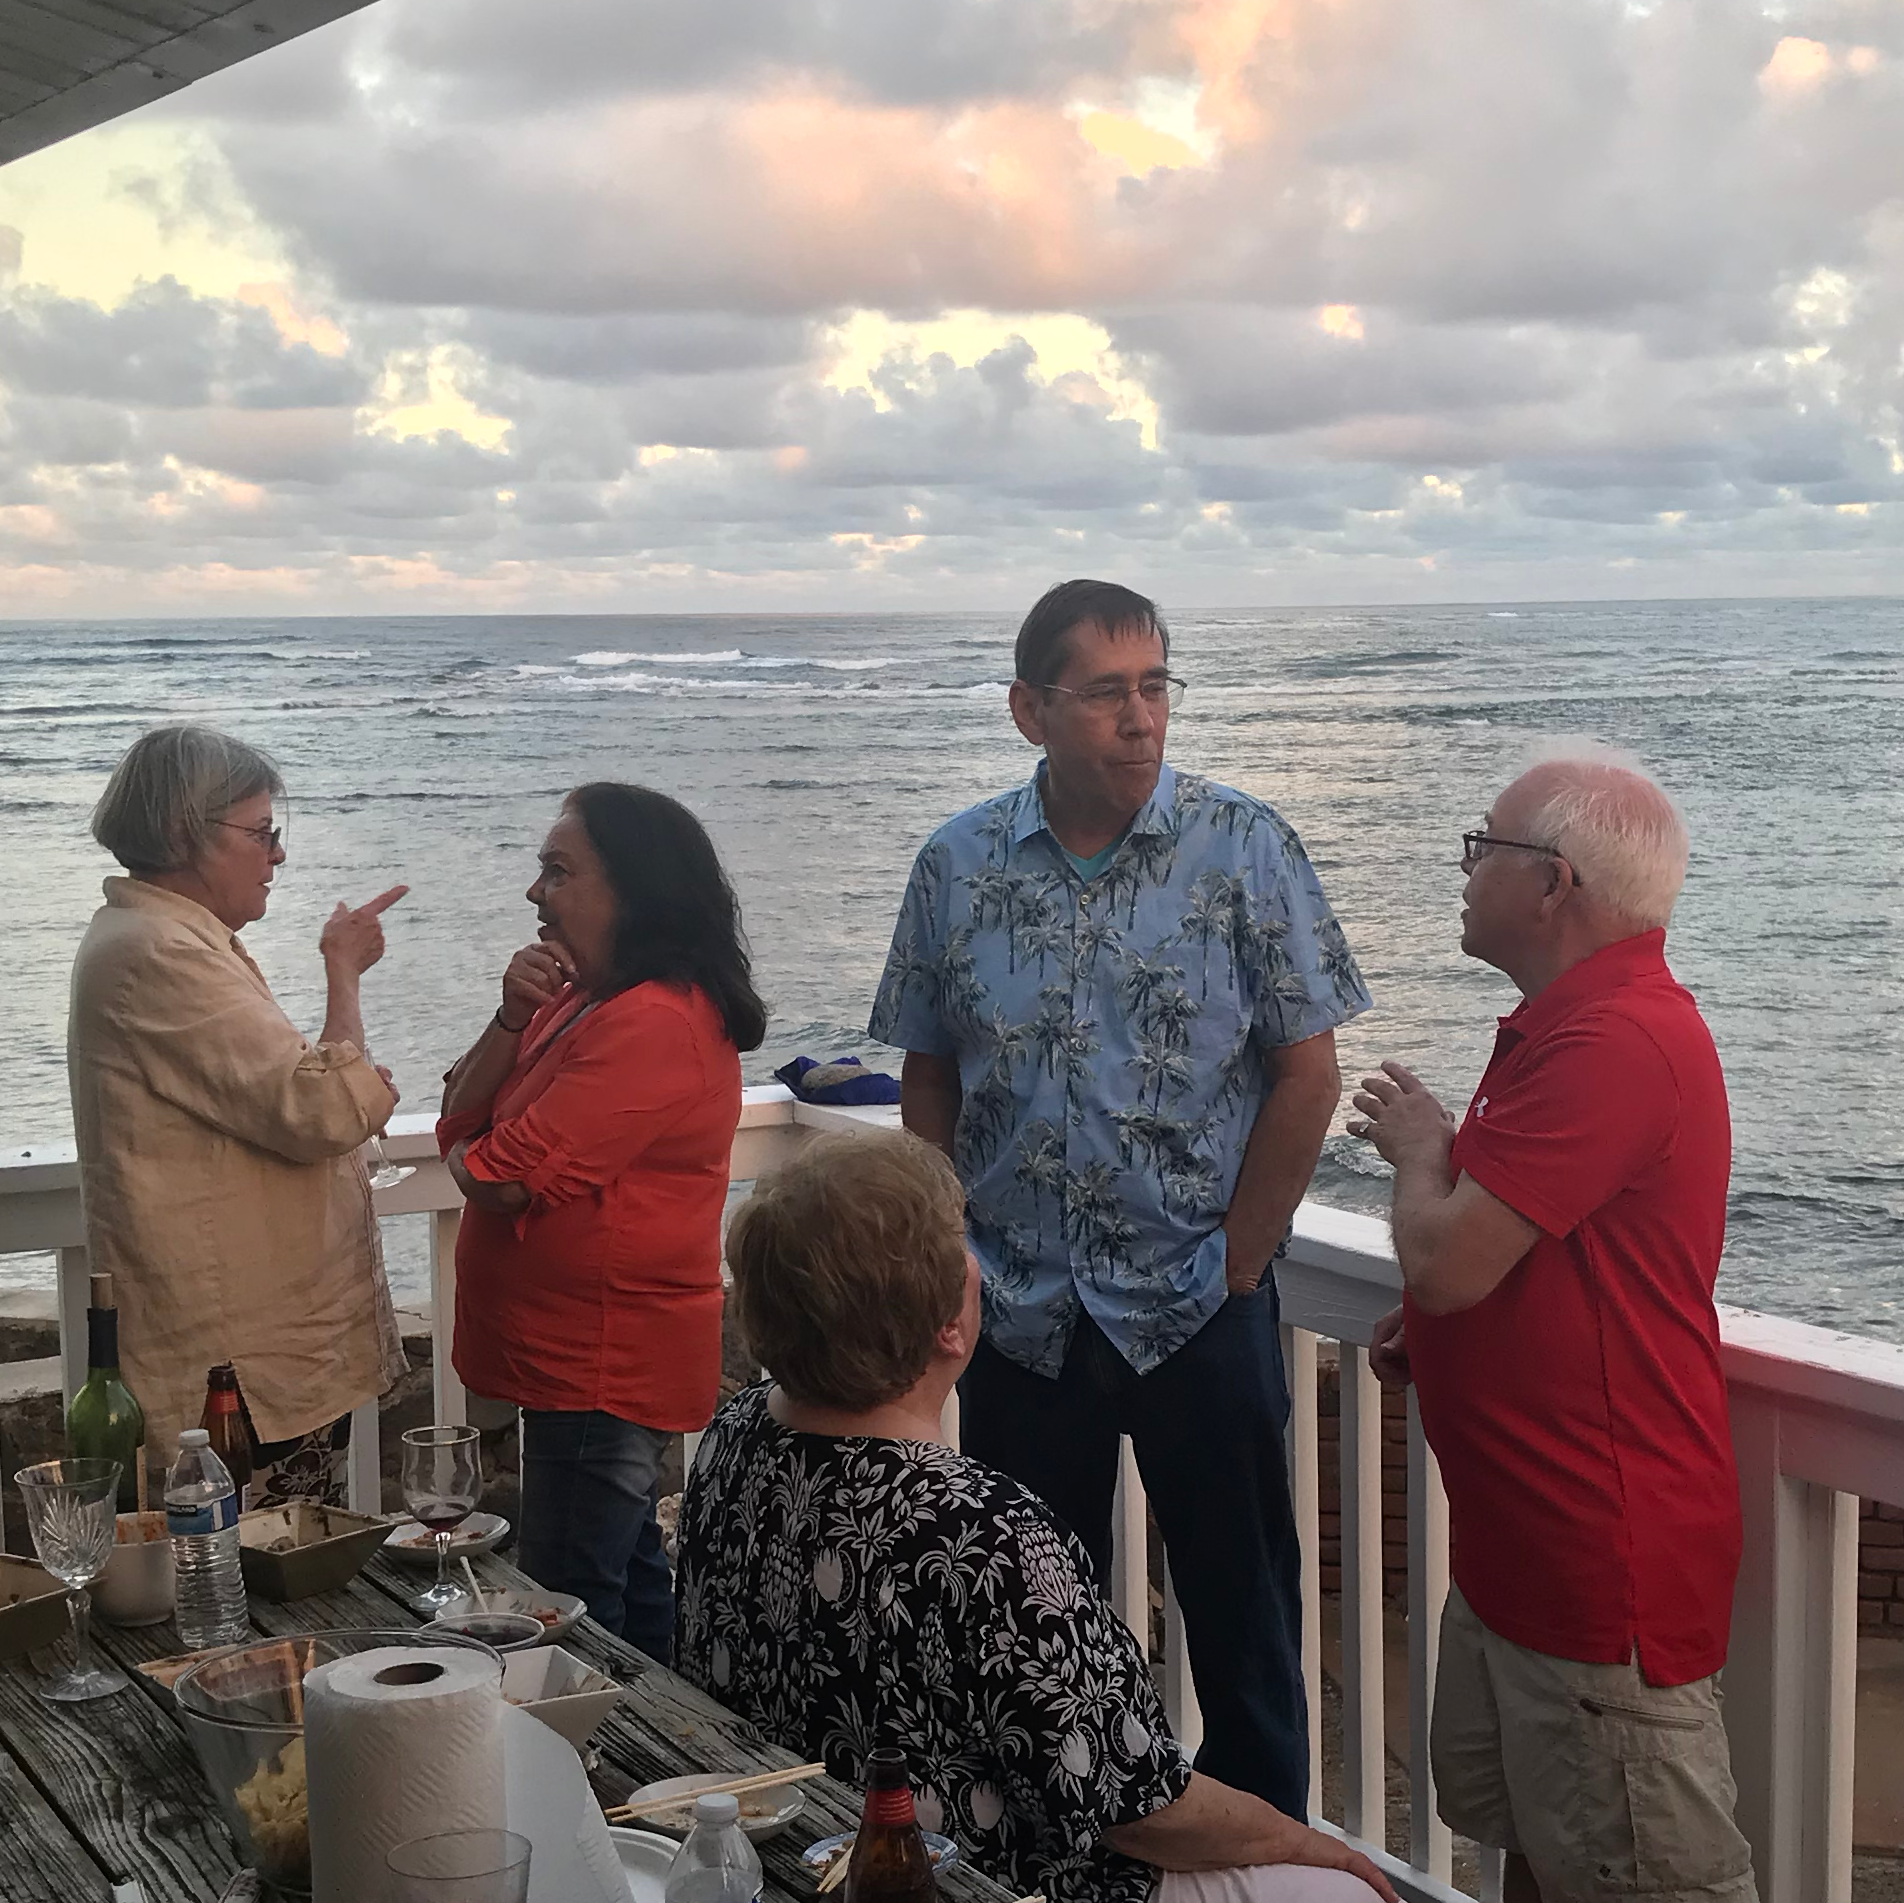 Wonderful Aloha welcome from Maureen Malanaphy with Canda Bloir, Kathleen Malanaphy, Carol Chappell (seated), Rick Thomas, and Hugh John Malanaphy